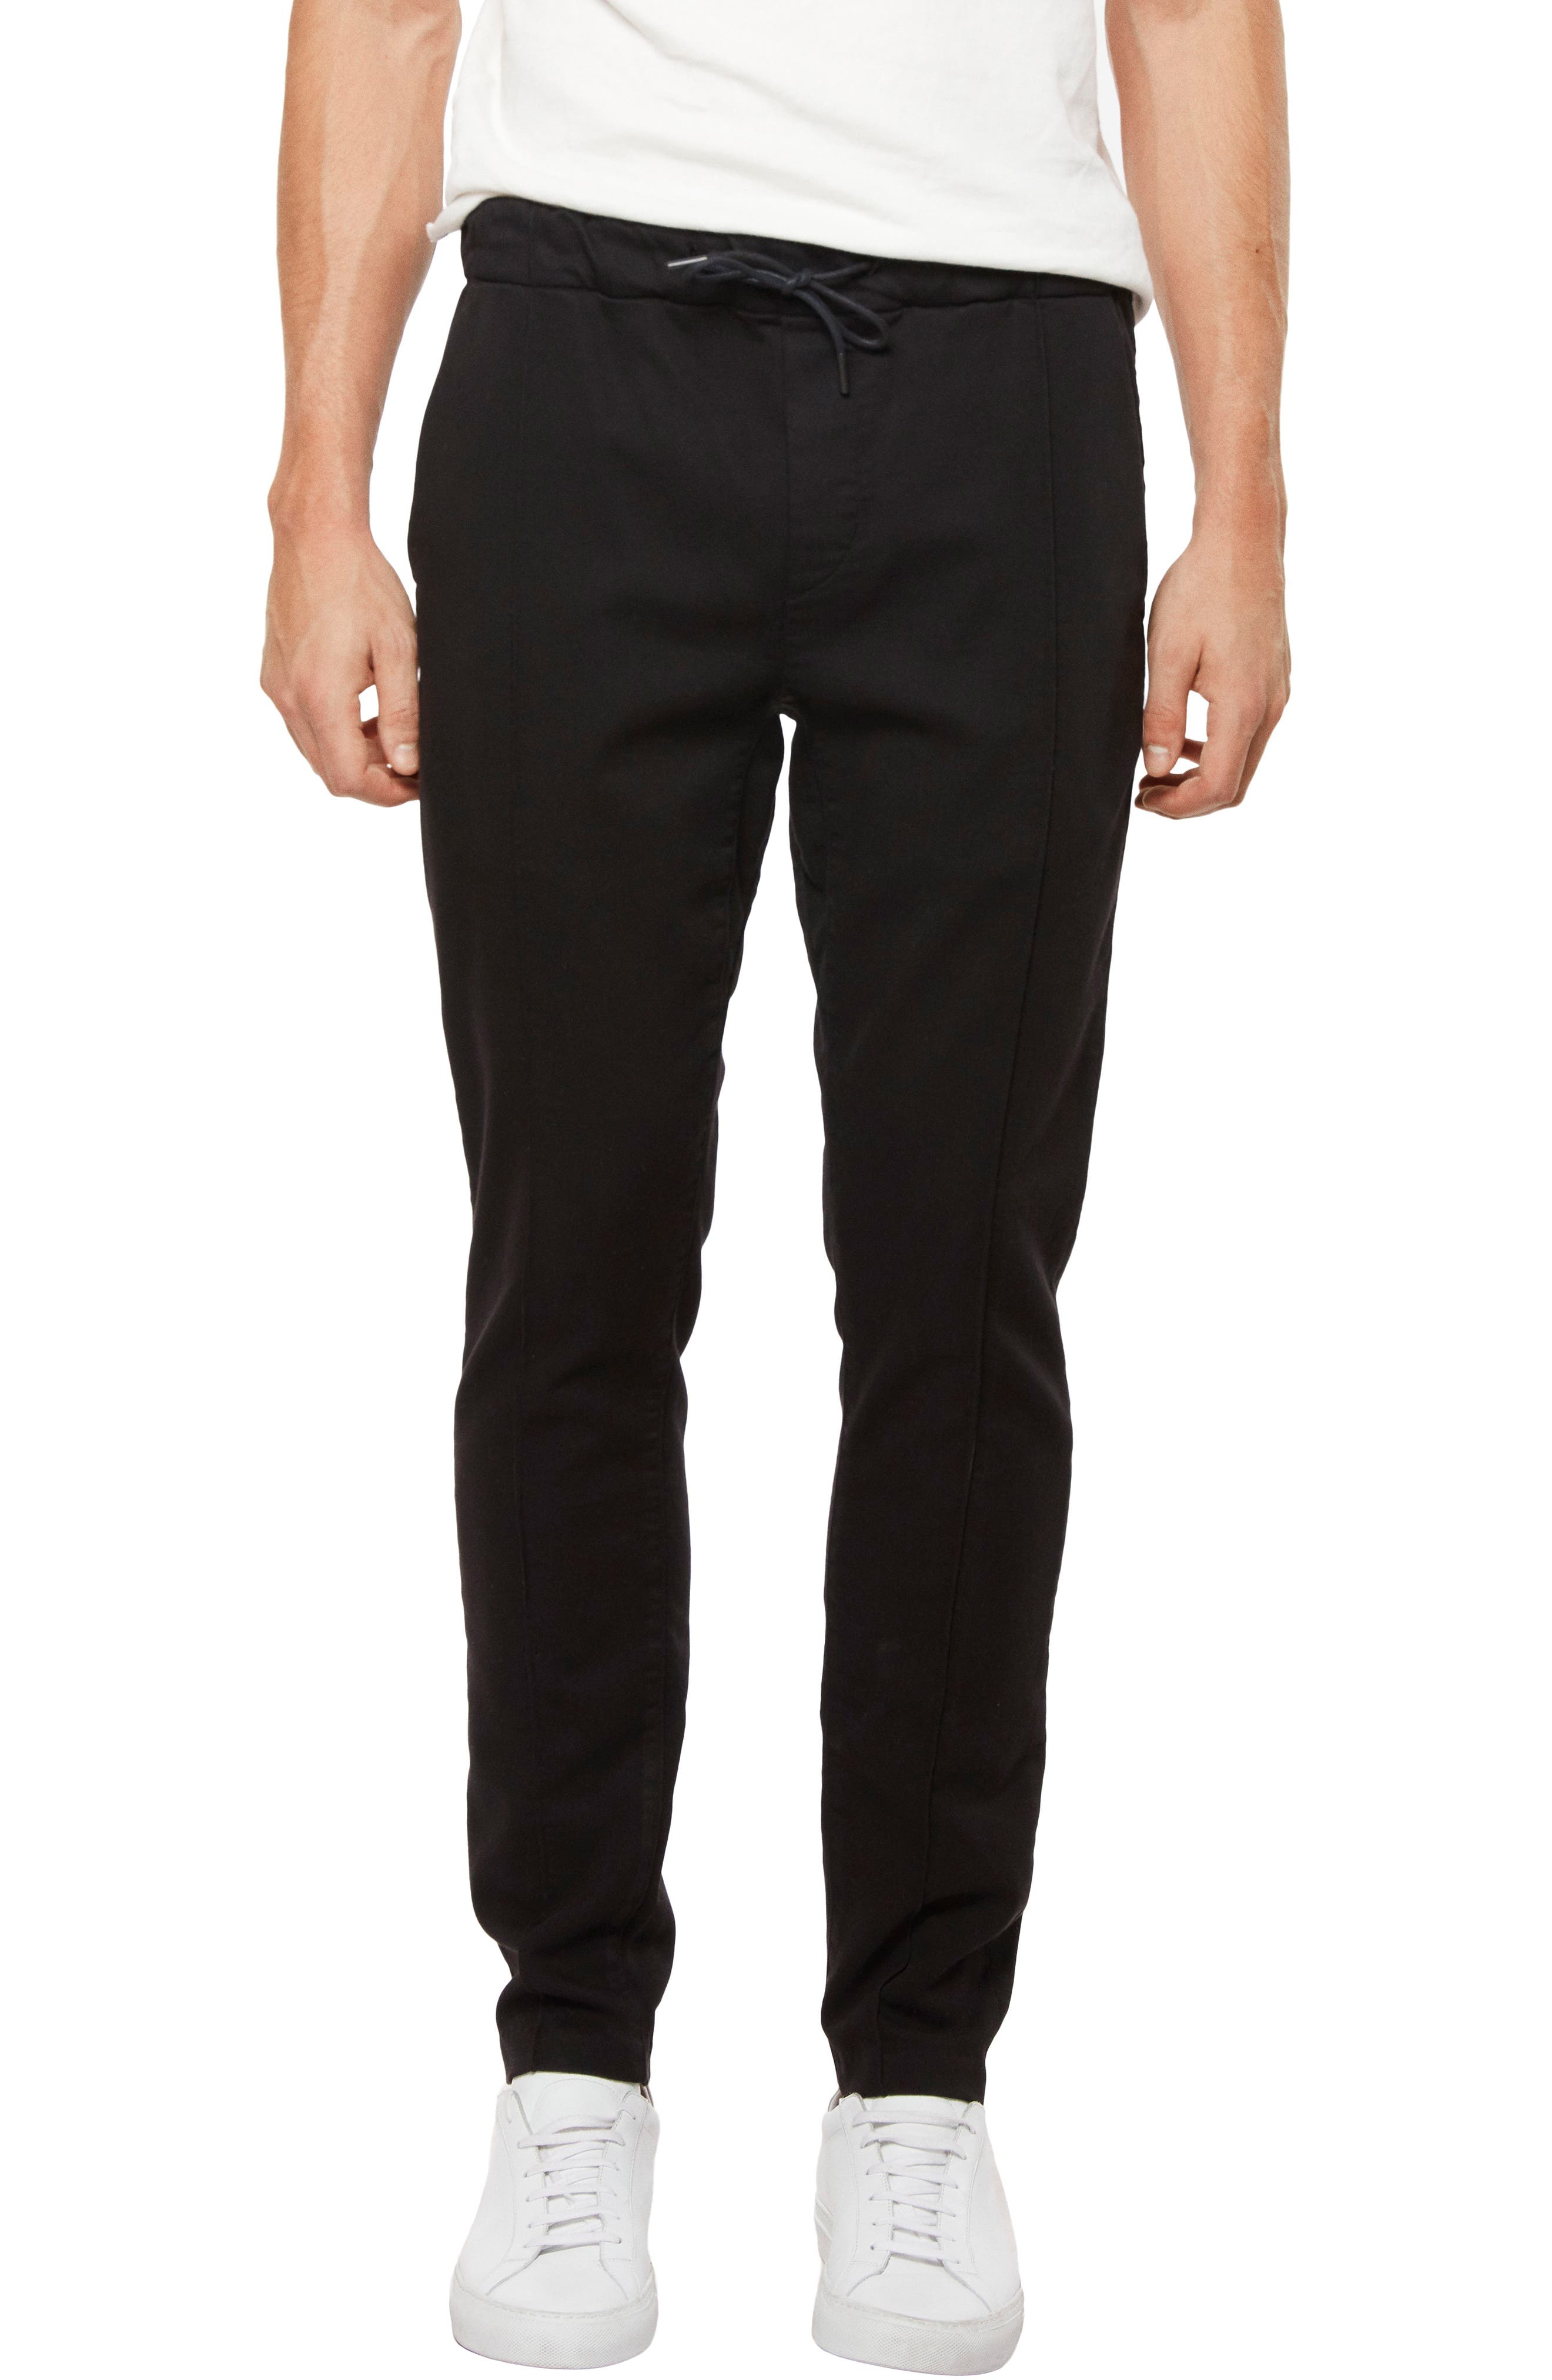 Wakat Relaxed Fit Jogger Pants,                         Main,                         color, Black